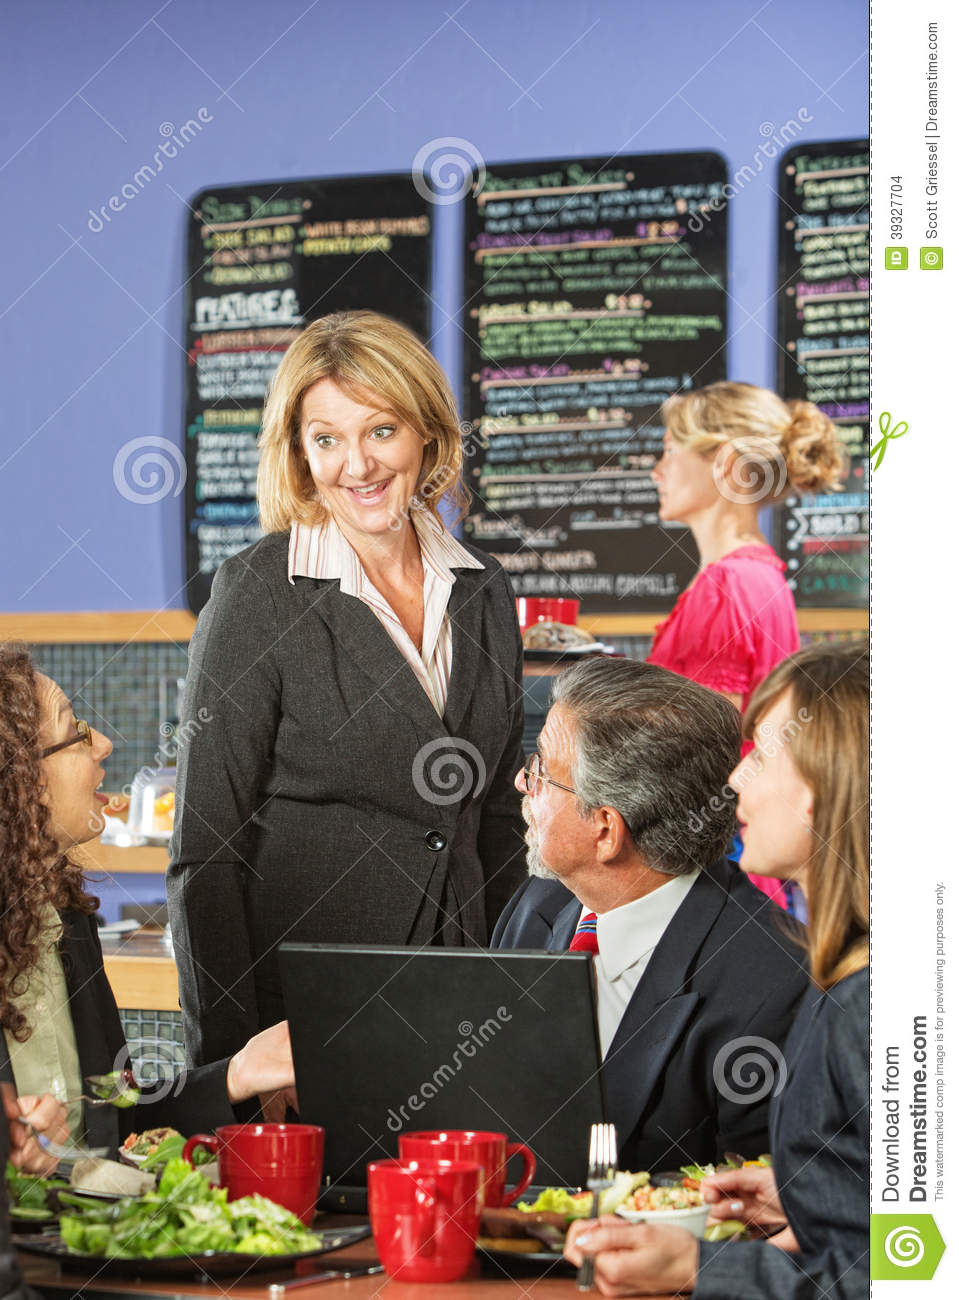 Business People In Cafe Talking Stock Photo - Image of